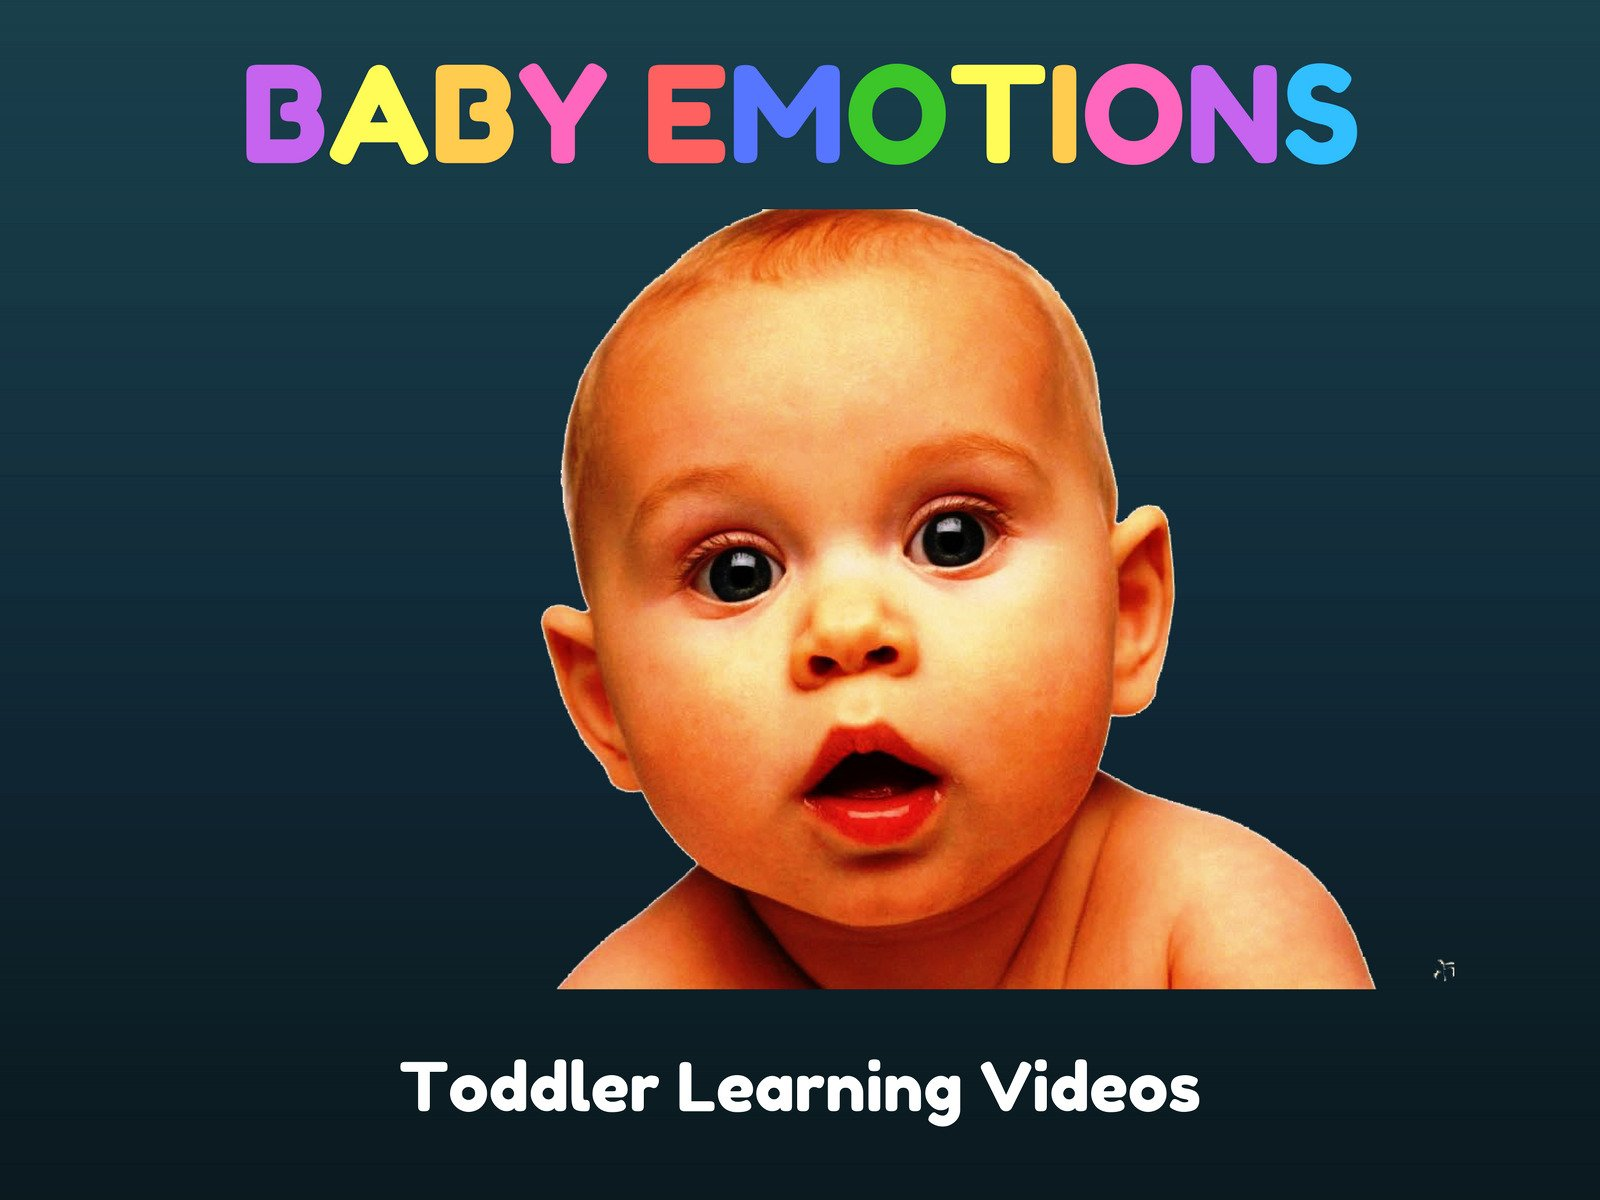 Baby Emotions: Toddler Learning Videos